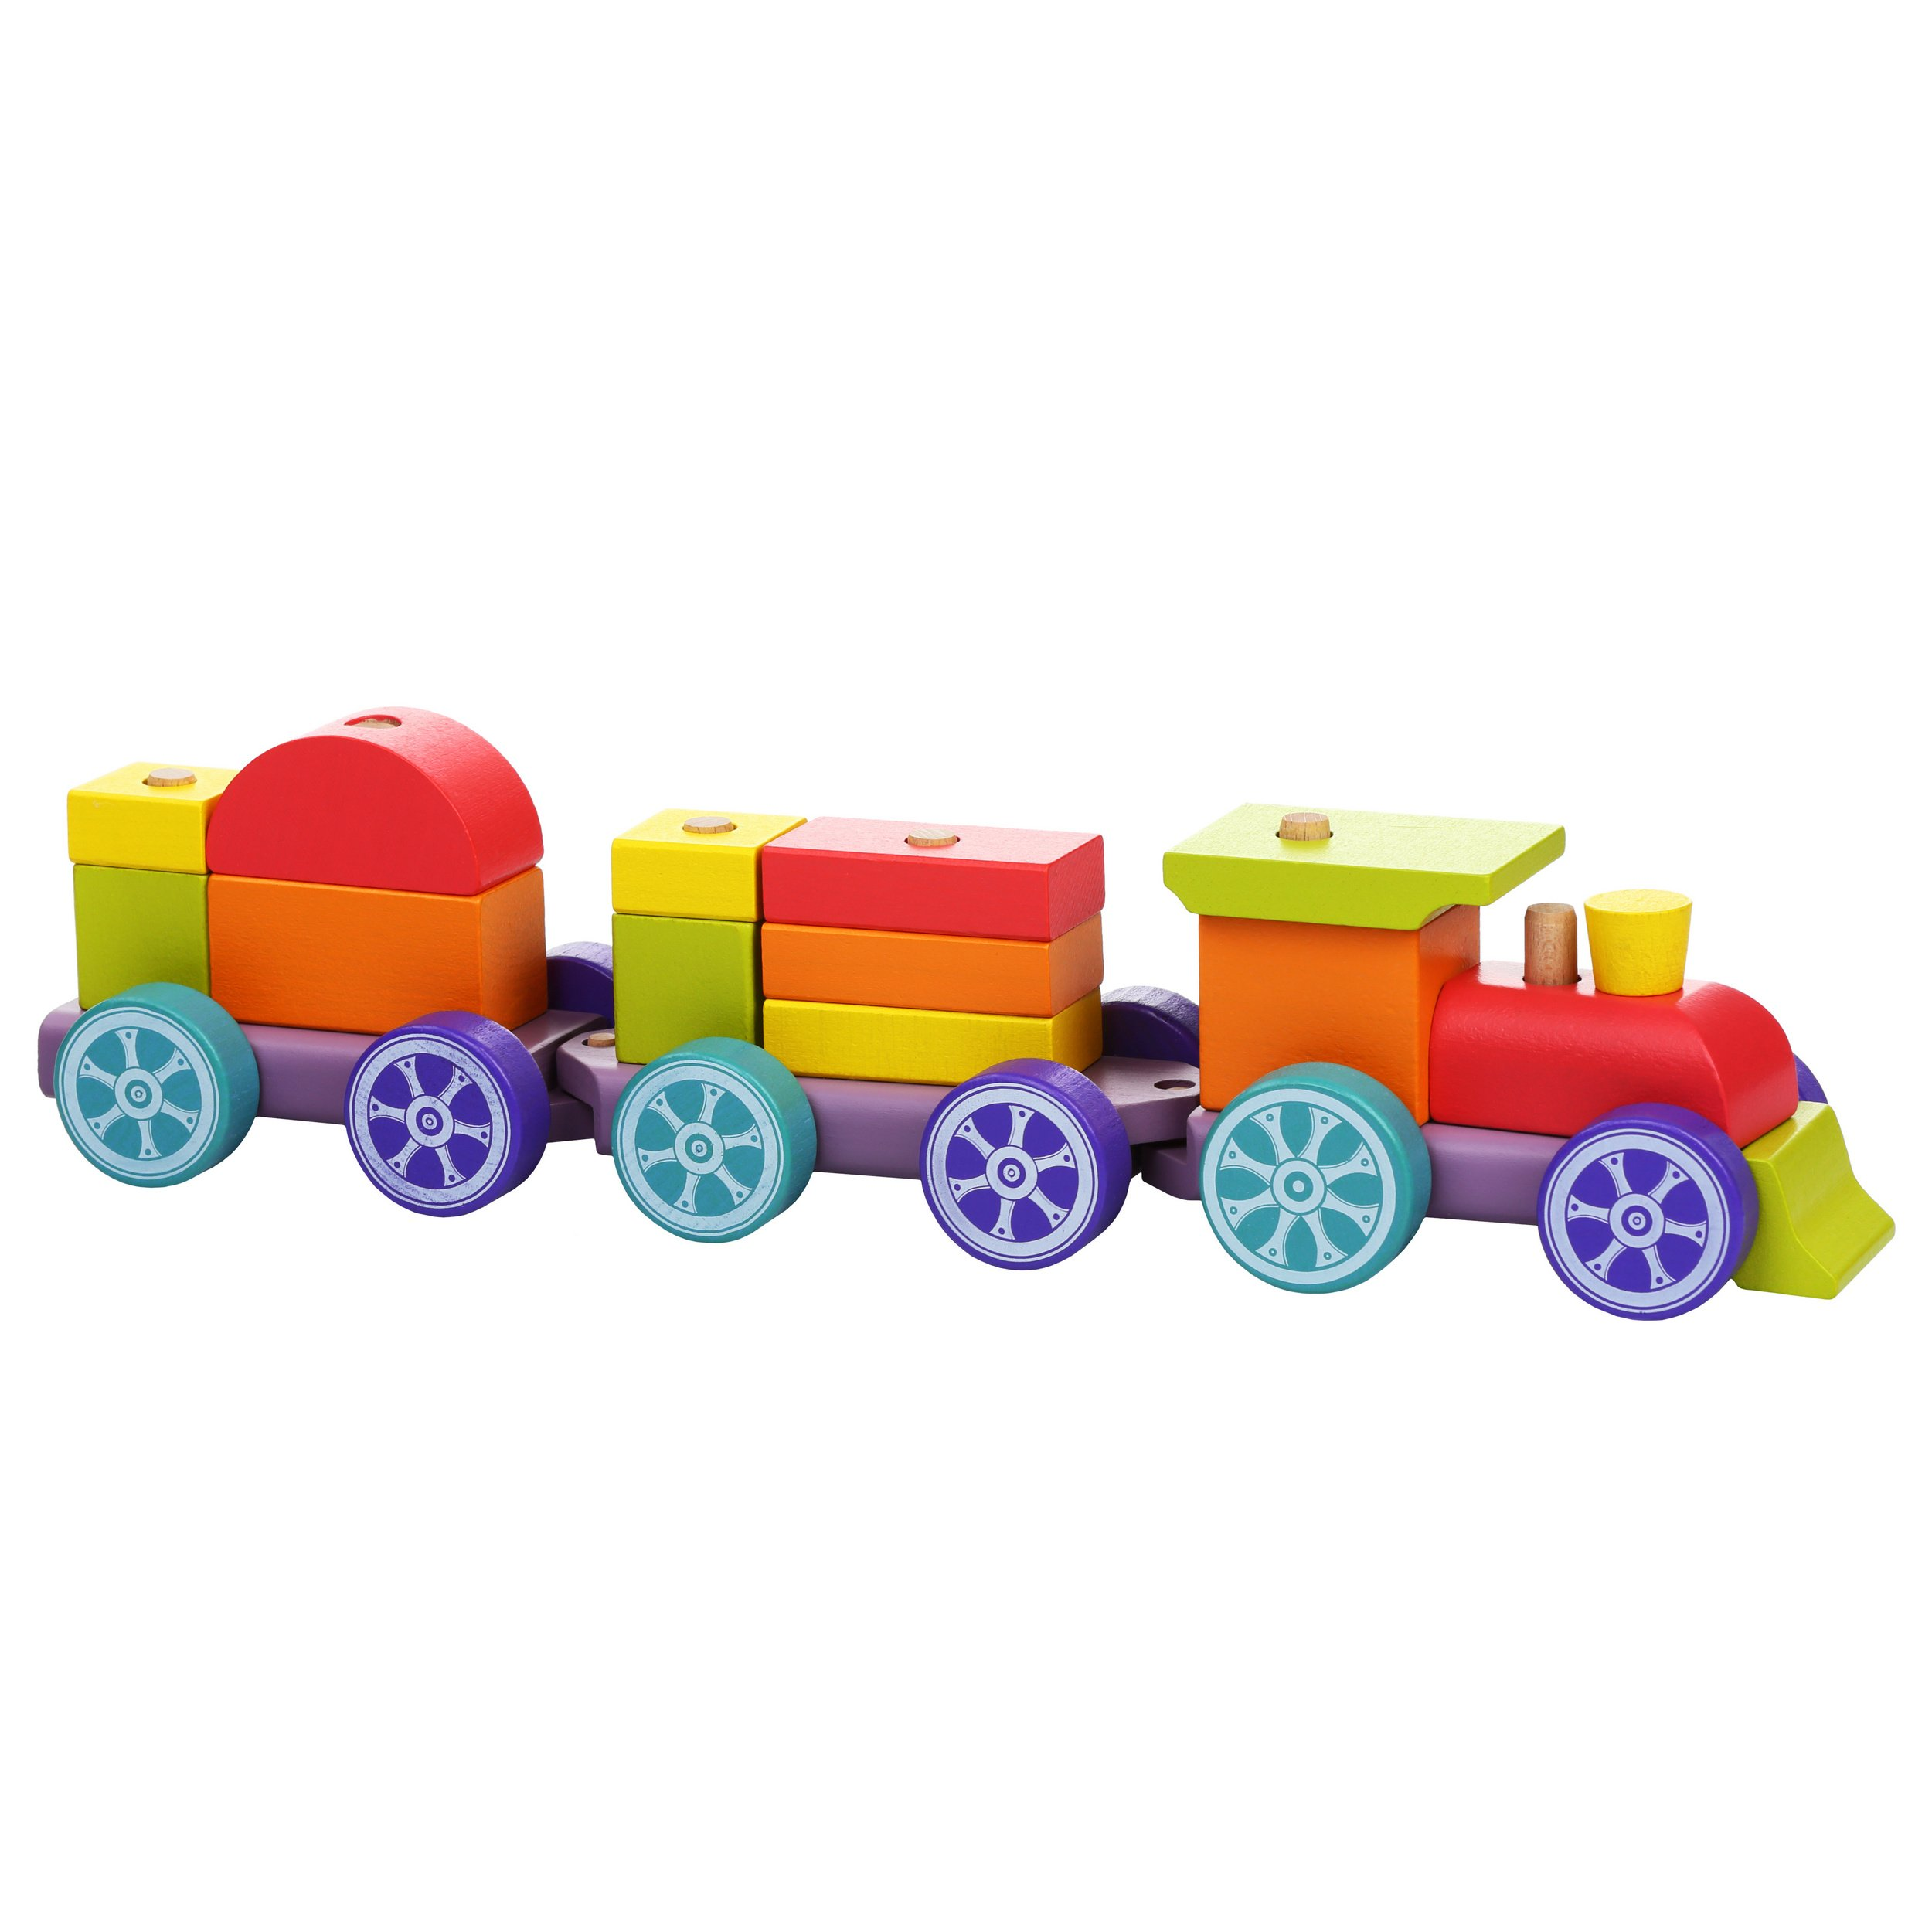 Wise Elk 12923Wooden Train Stacking Puzzle Toy